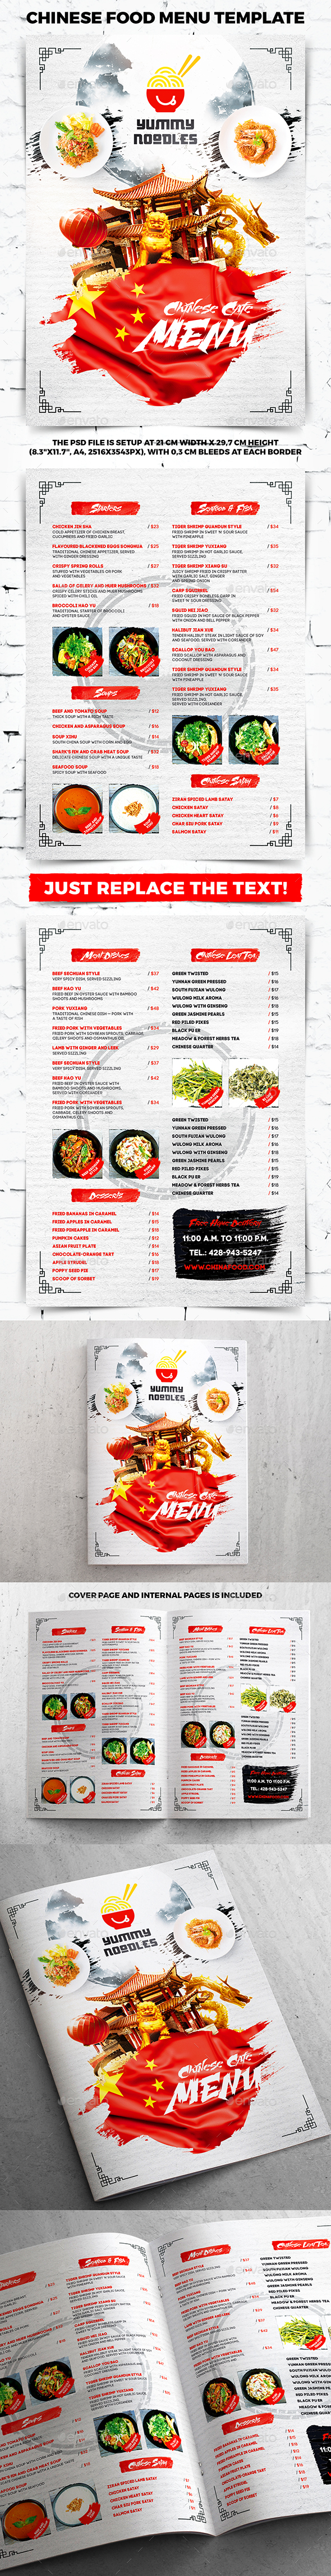 Chinese Food Menu Template - Food Menus Print Templates